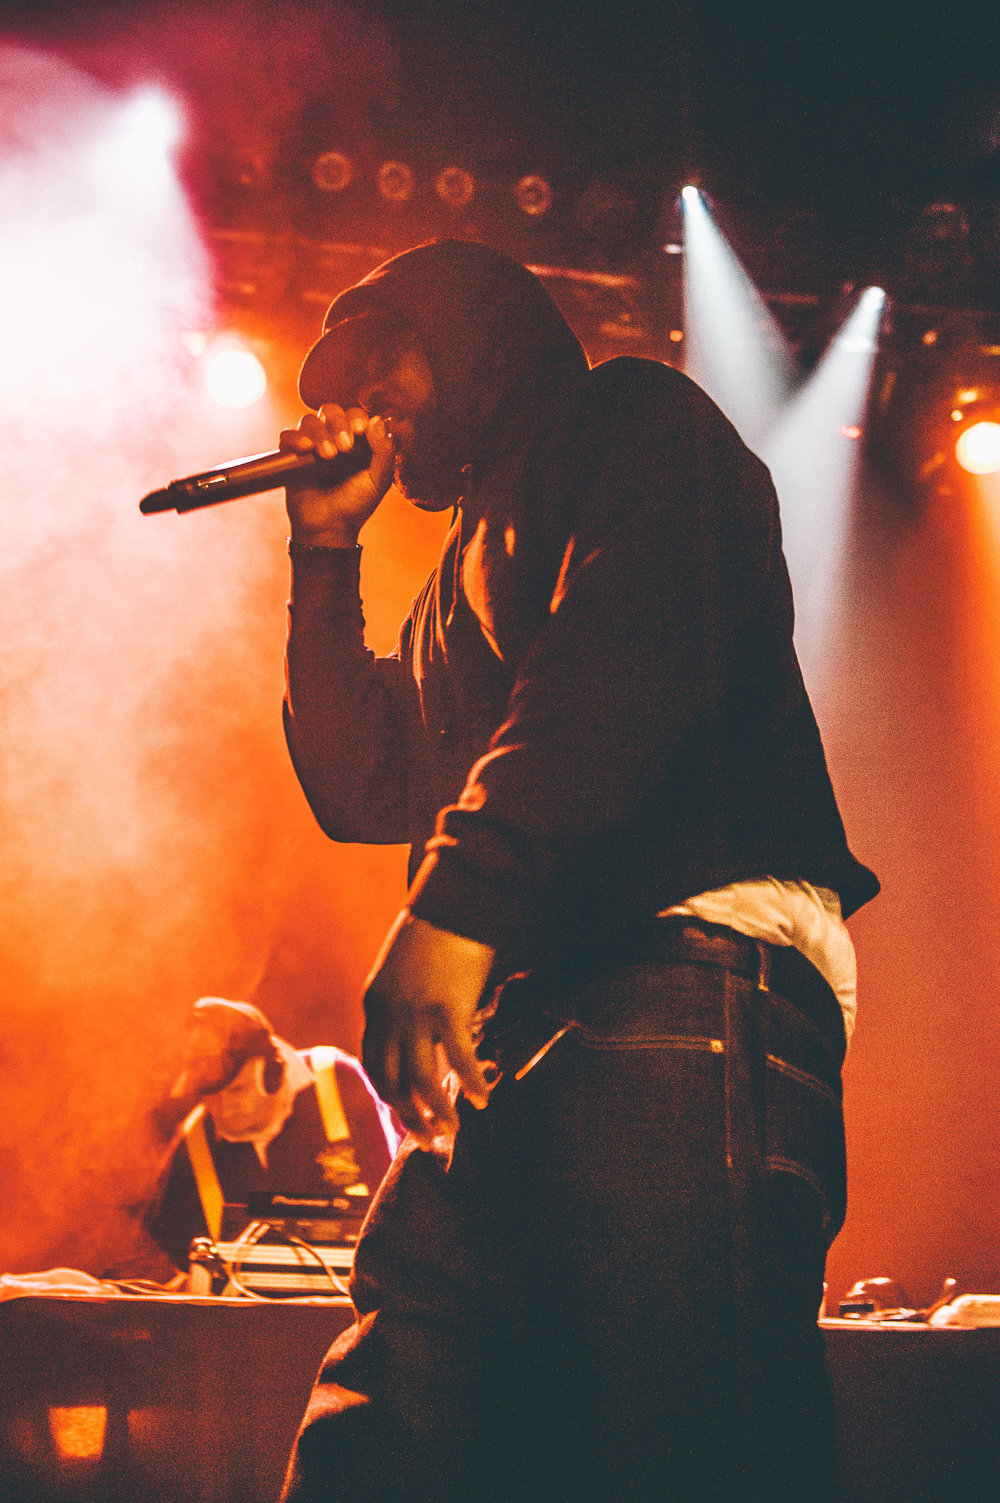 1_Ghostface_Killah-Rickshaw_Theatre-Timothy_Nguyen-20170227 (1 of 16).jpg